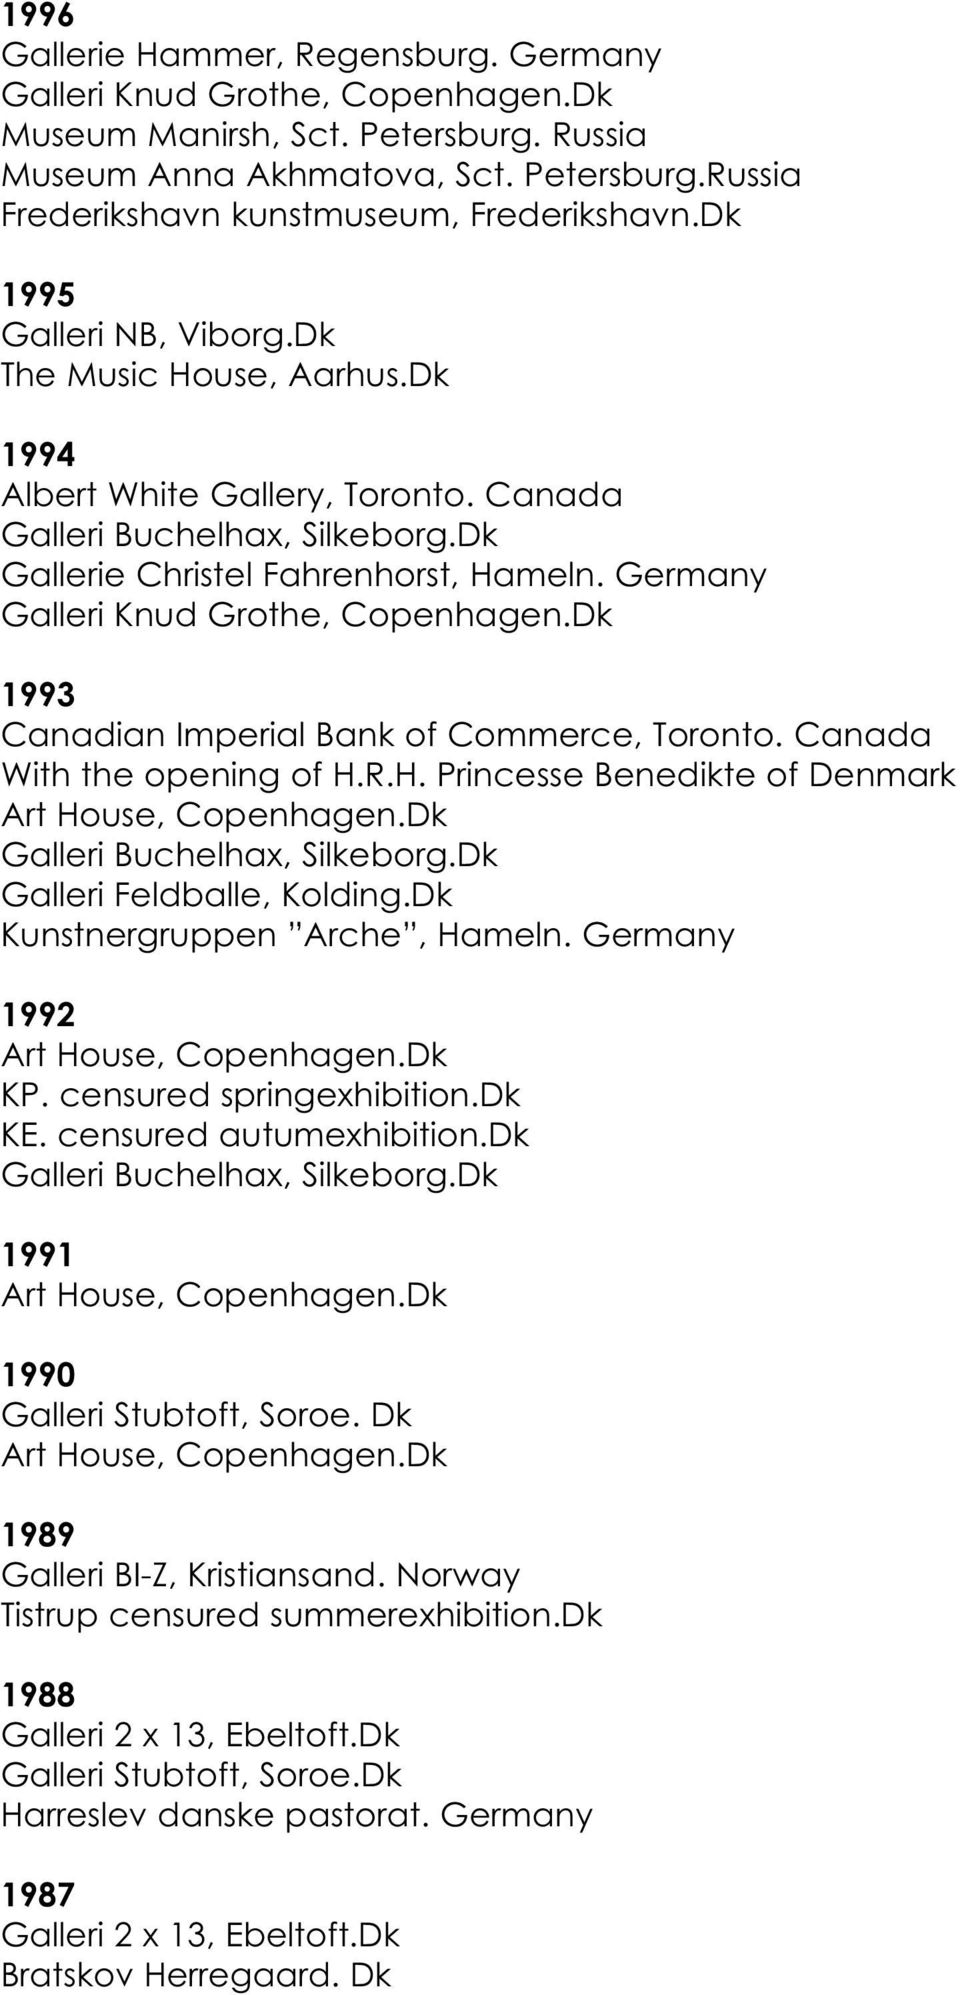 Germany 1993 Canadian Imperial Bank of Commerce, Toronto. Canada With the opening of H.R.H. Princesse Benedikte of Denmark Galleri Buchelhax, Silkeborg.Dk Galleri Feldballe, Kolding.